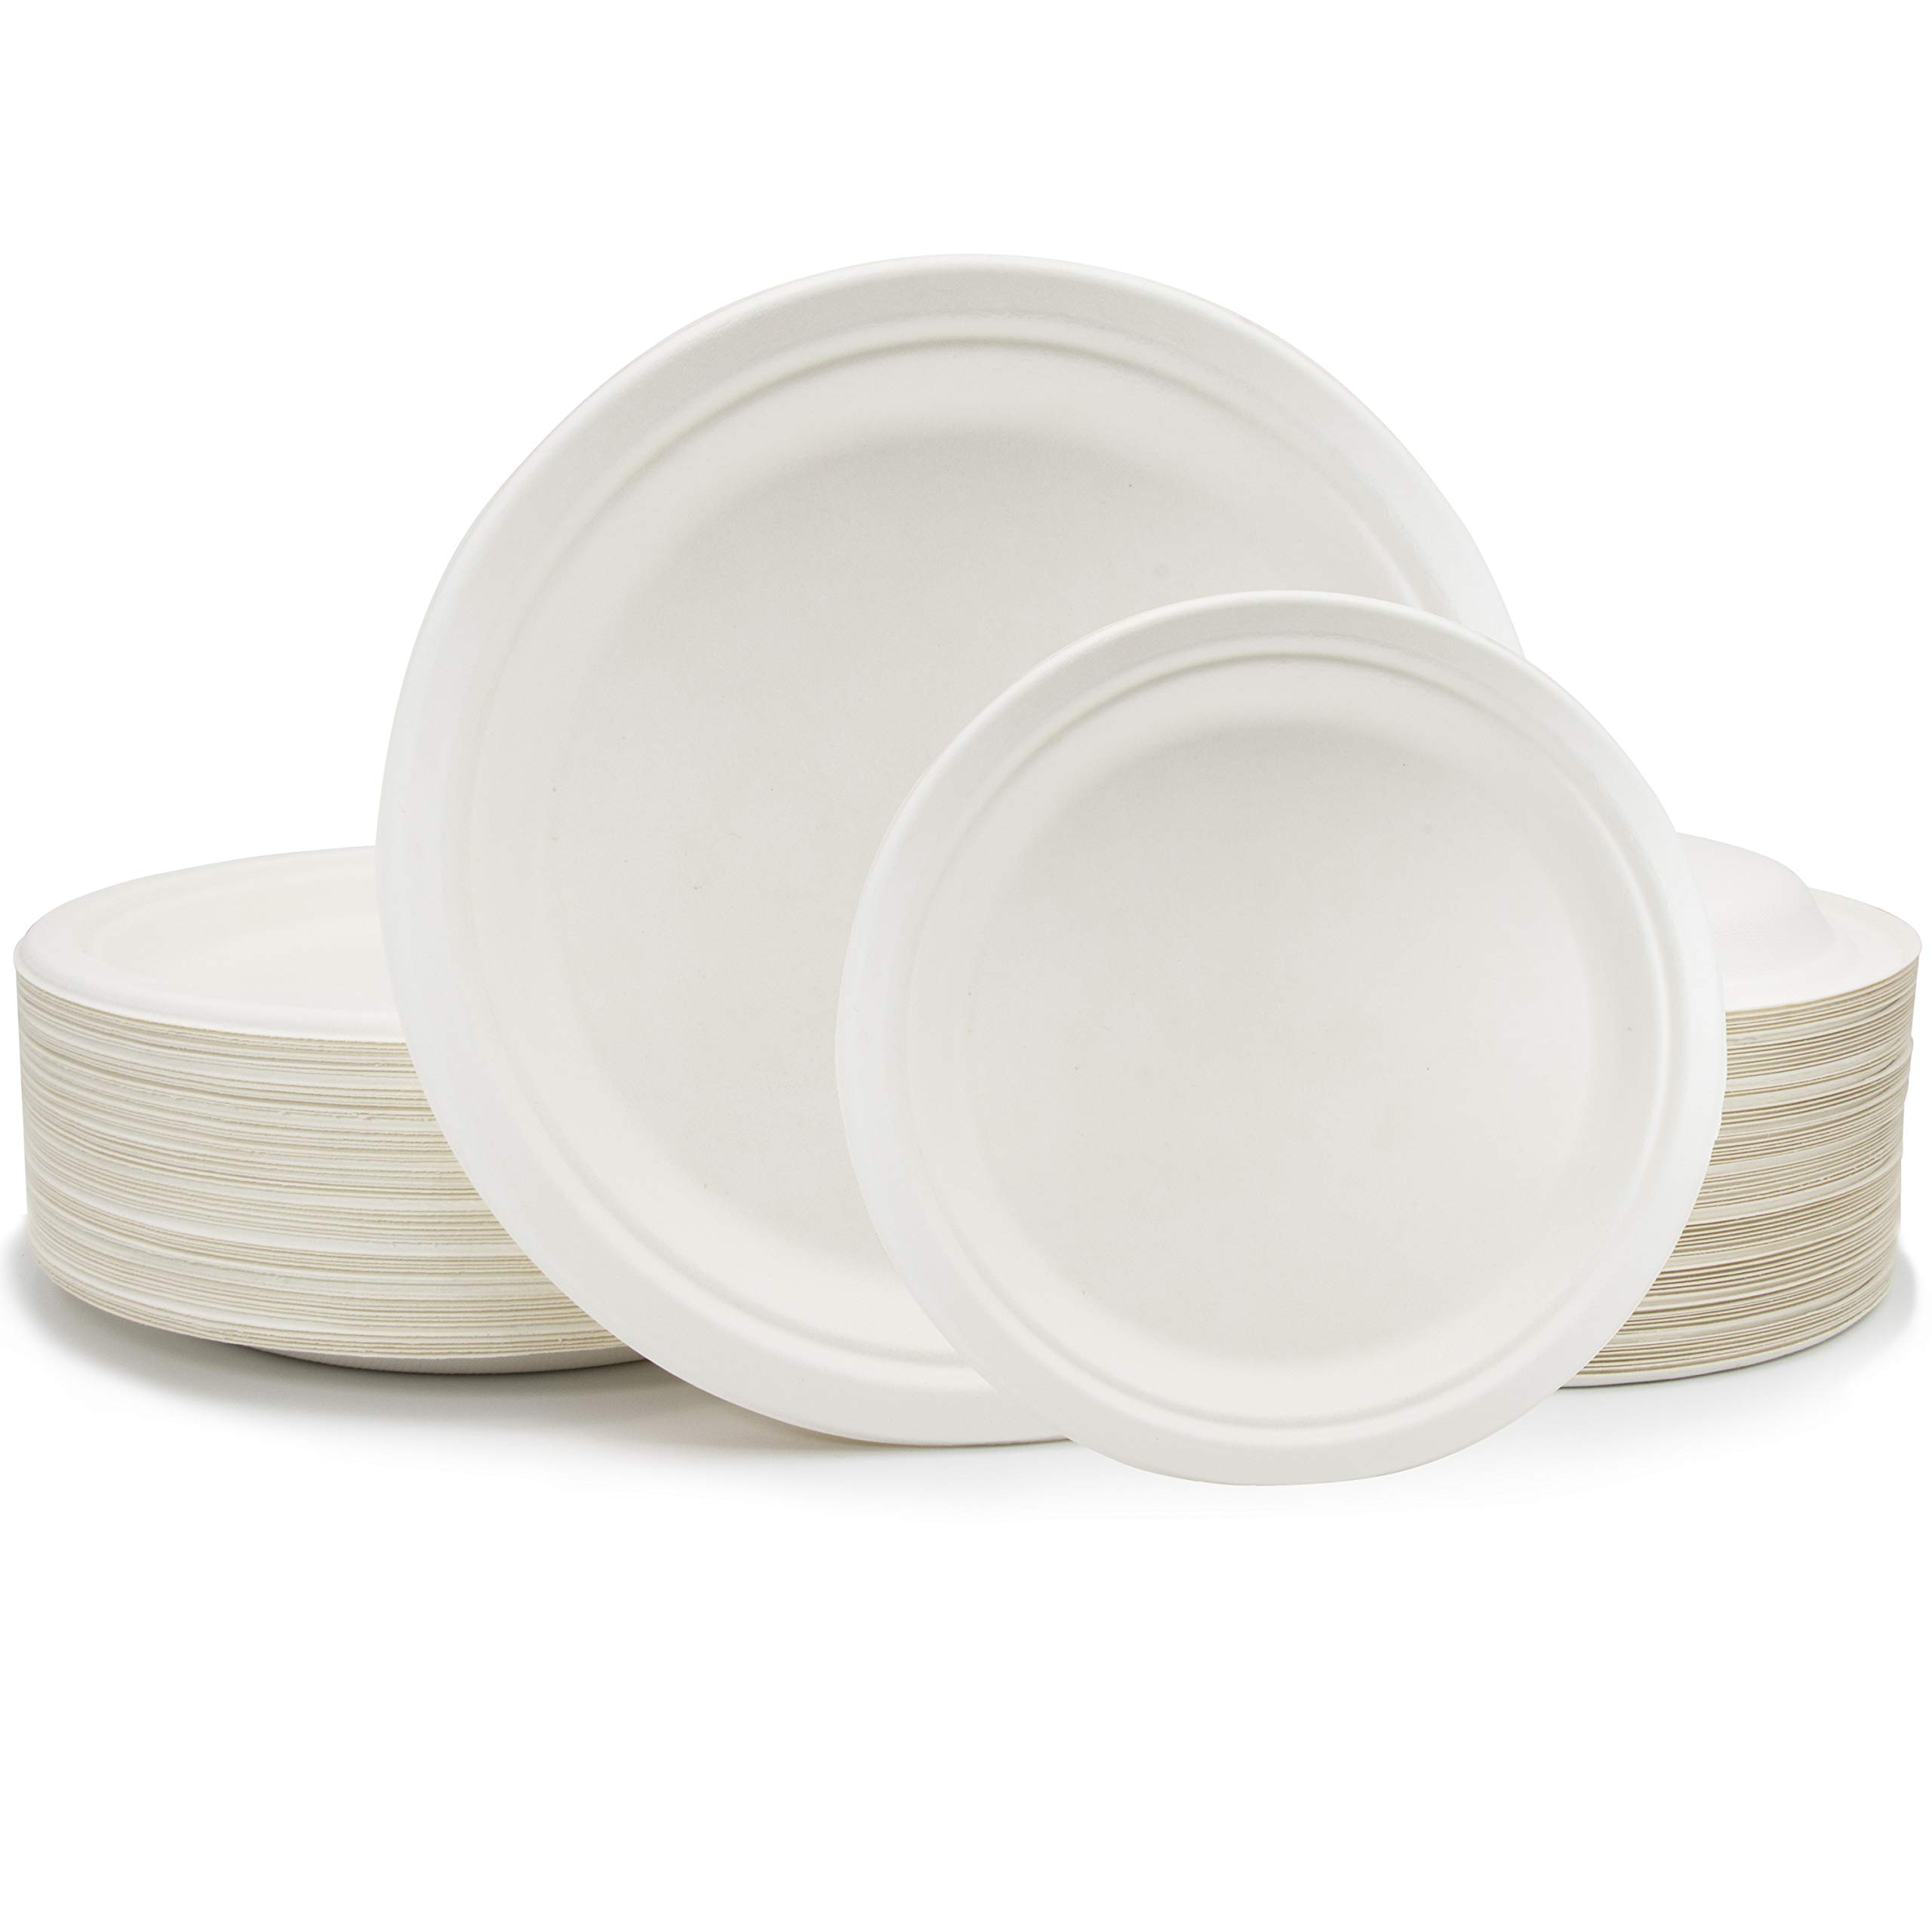 Compostable Eco Friendly Round Dinnerware - 50 Dinner 10 In Plates and 50 Dessert Appetizer Dessert 7 In Plates, Biodegradable Sugarcane Bagasse